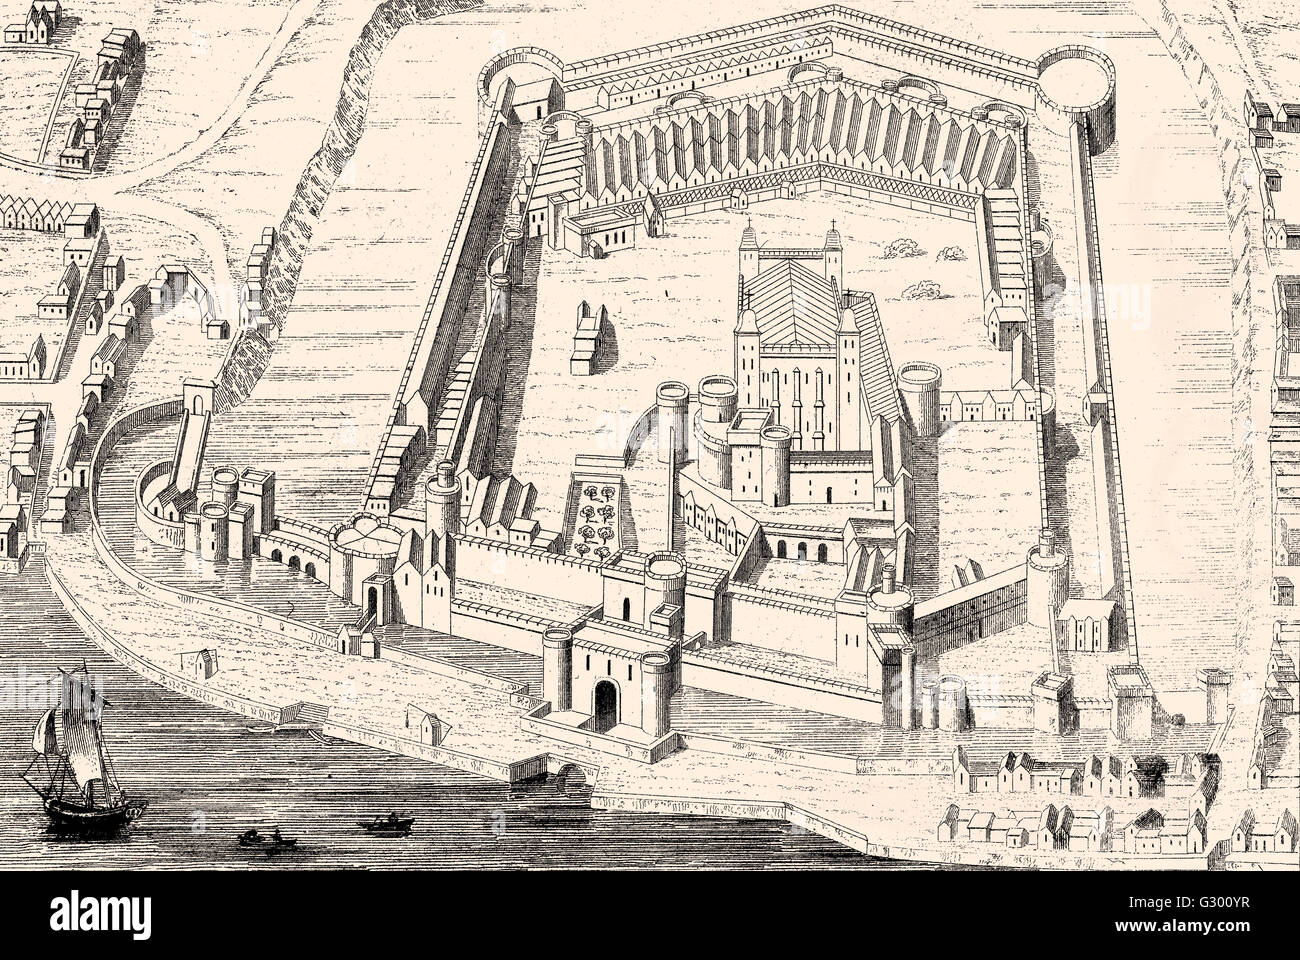 Tower of London, Her Majesty's Royal Palace and Fortress, a historic castle located on the north bank of the - Stock Image